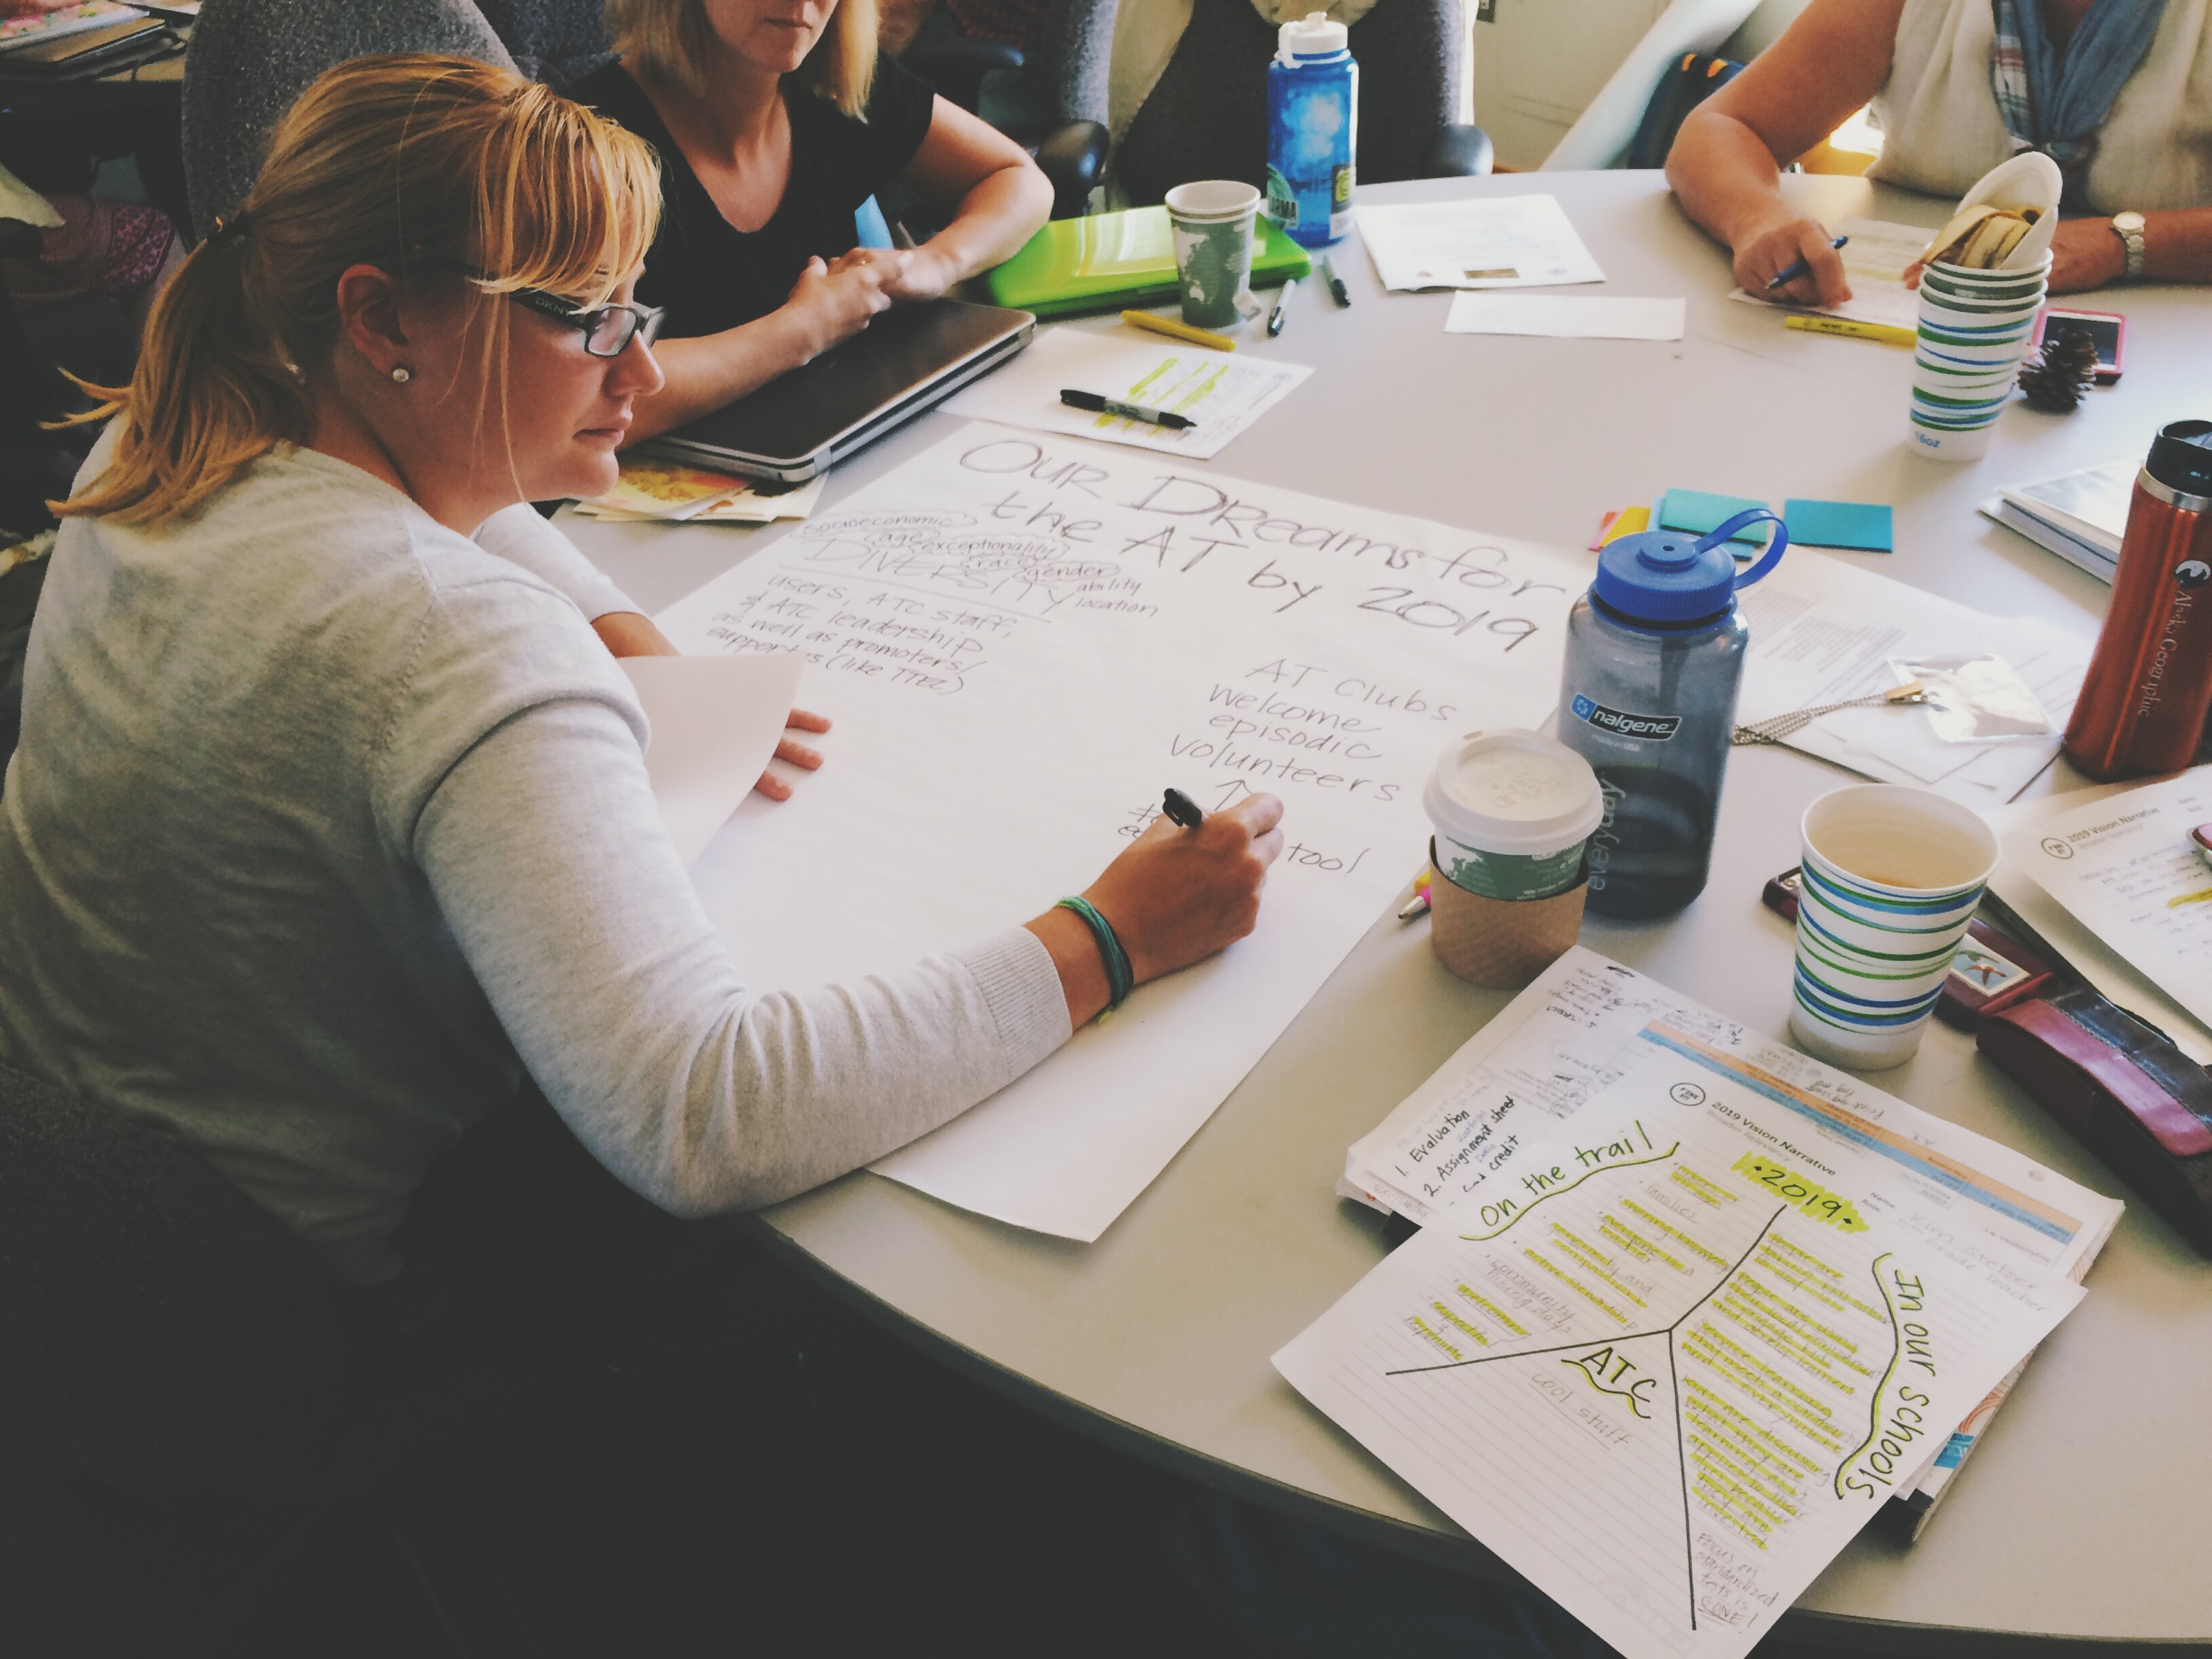 Design for good. - I work with mission focused individuals and organizations to mine their collective stories, find their voice, connect with each other and their work, and elevate the meaningful work they do through: web, research and strategy engagements, branding, and workshops & retreats.